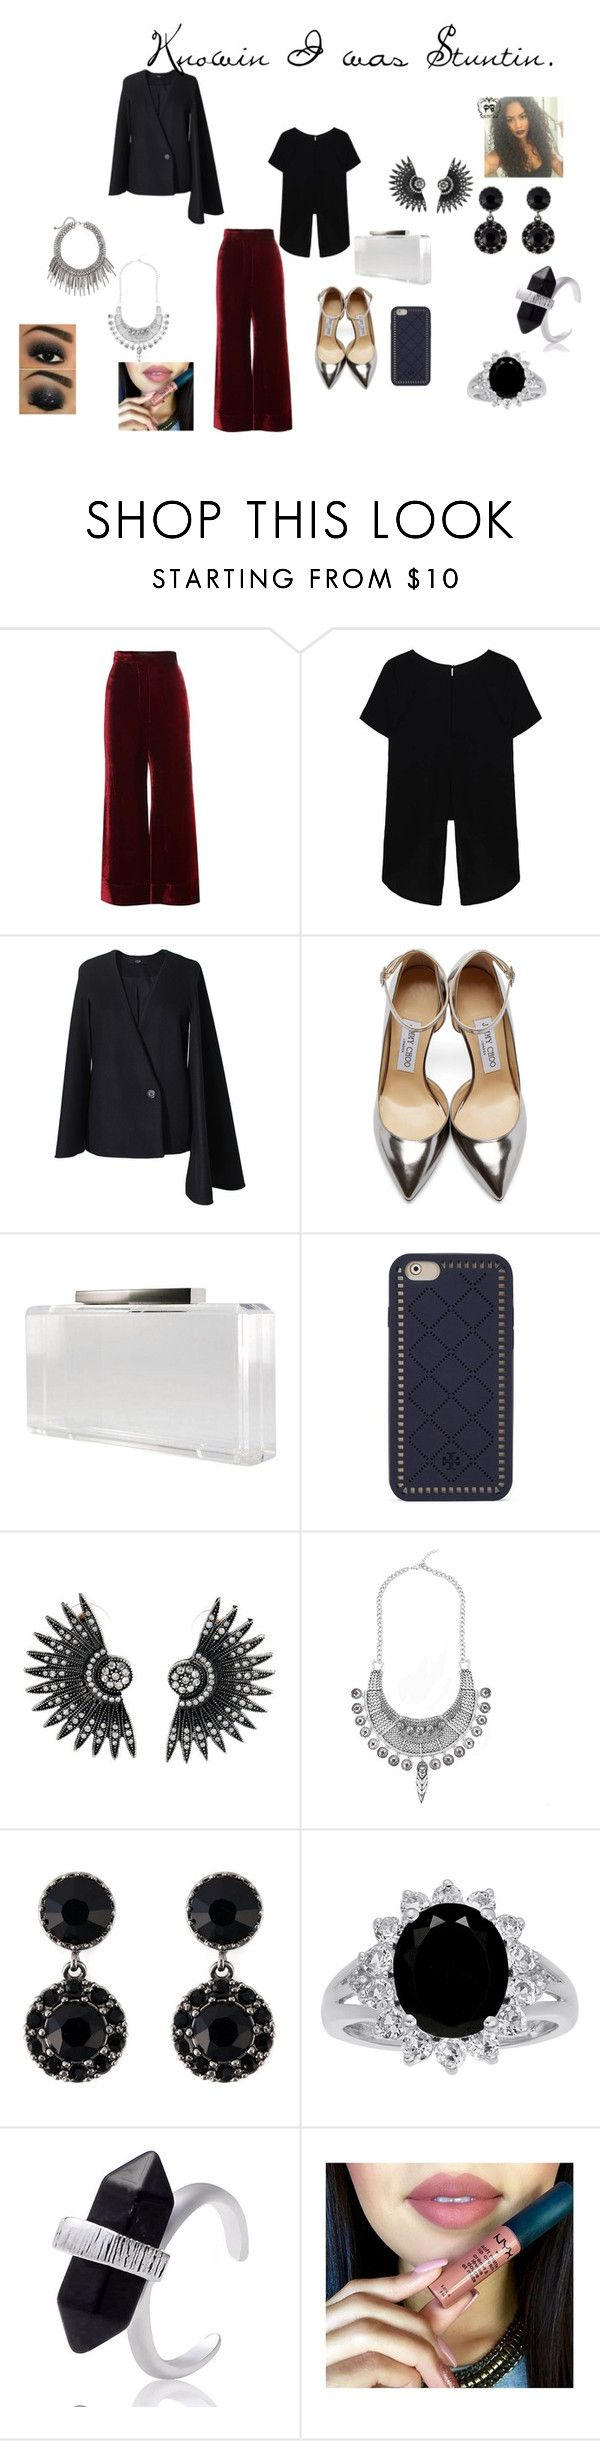 """""""Untitled #105"""" by rosesanders on Polyvore featuring E L L E R Y, TIBI, Jimmy Choo, Tory Burch, Givenchy, MAK, women's clothing, women's fashion, women and female"""